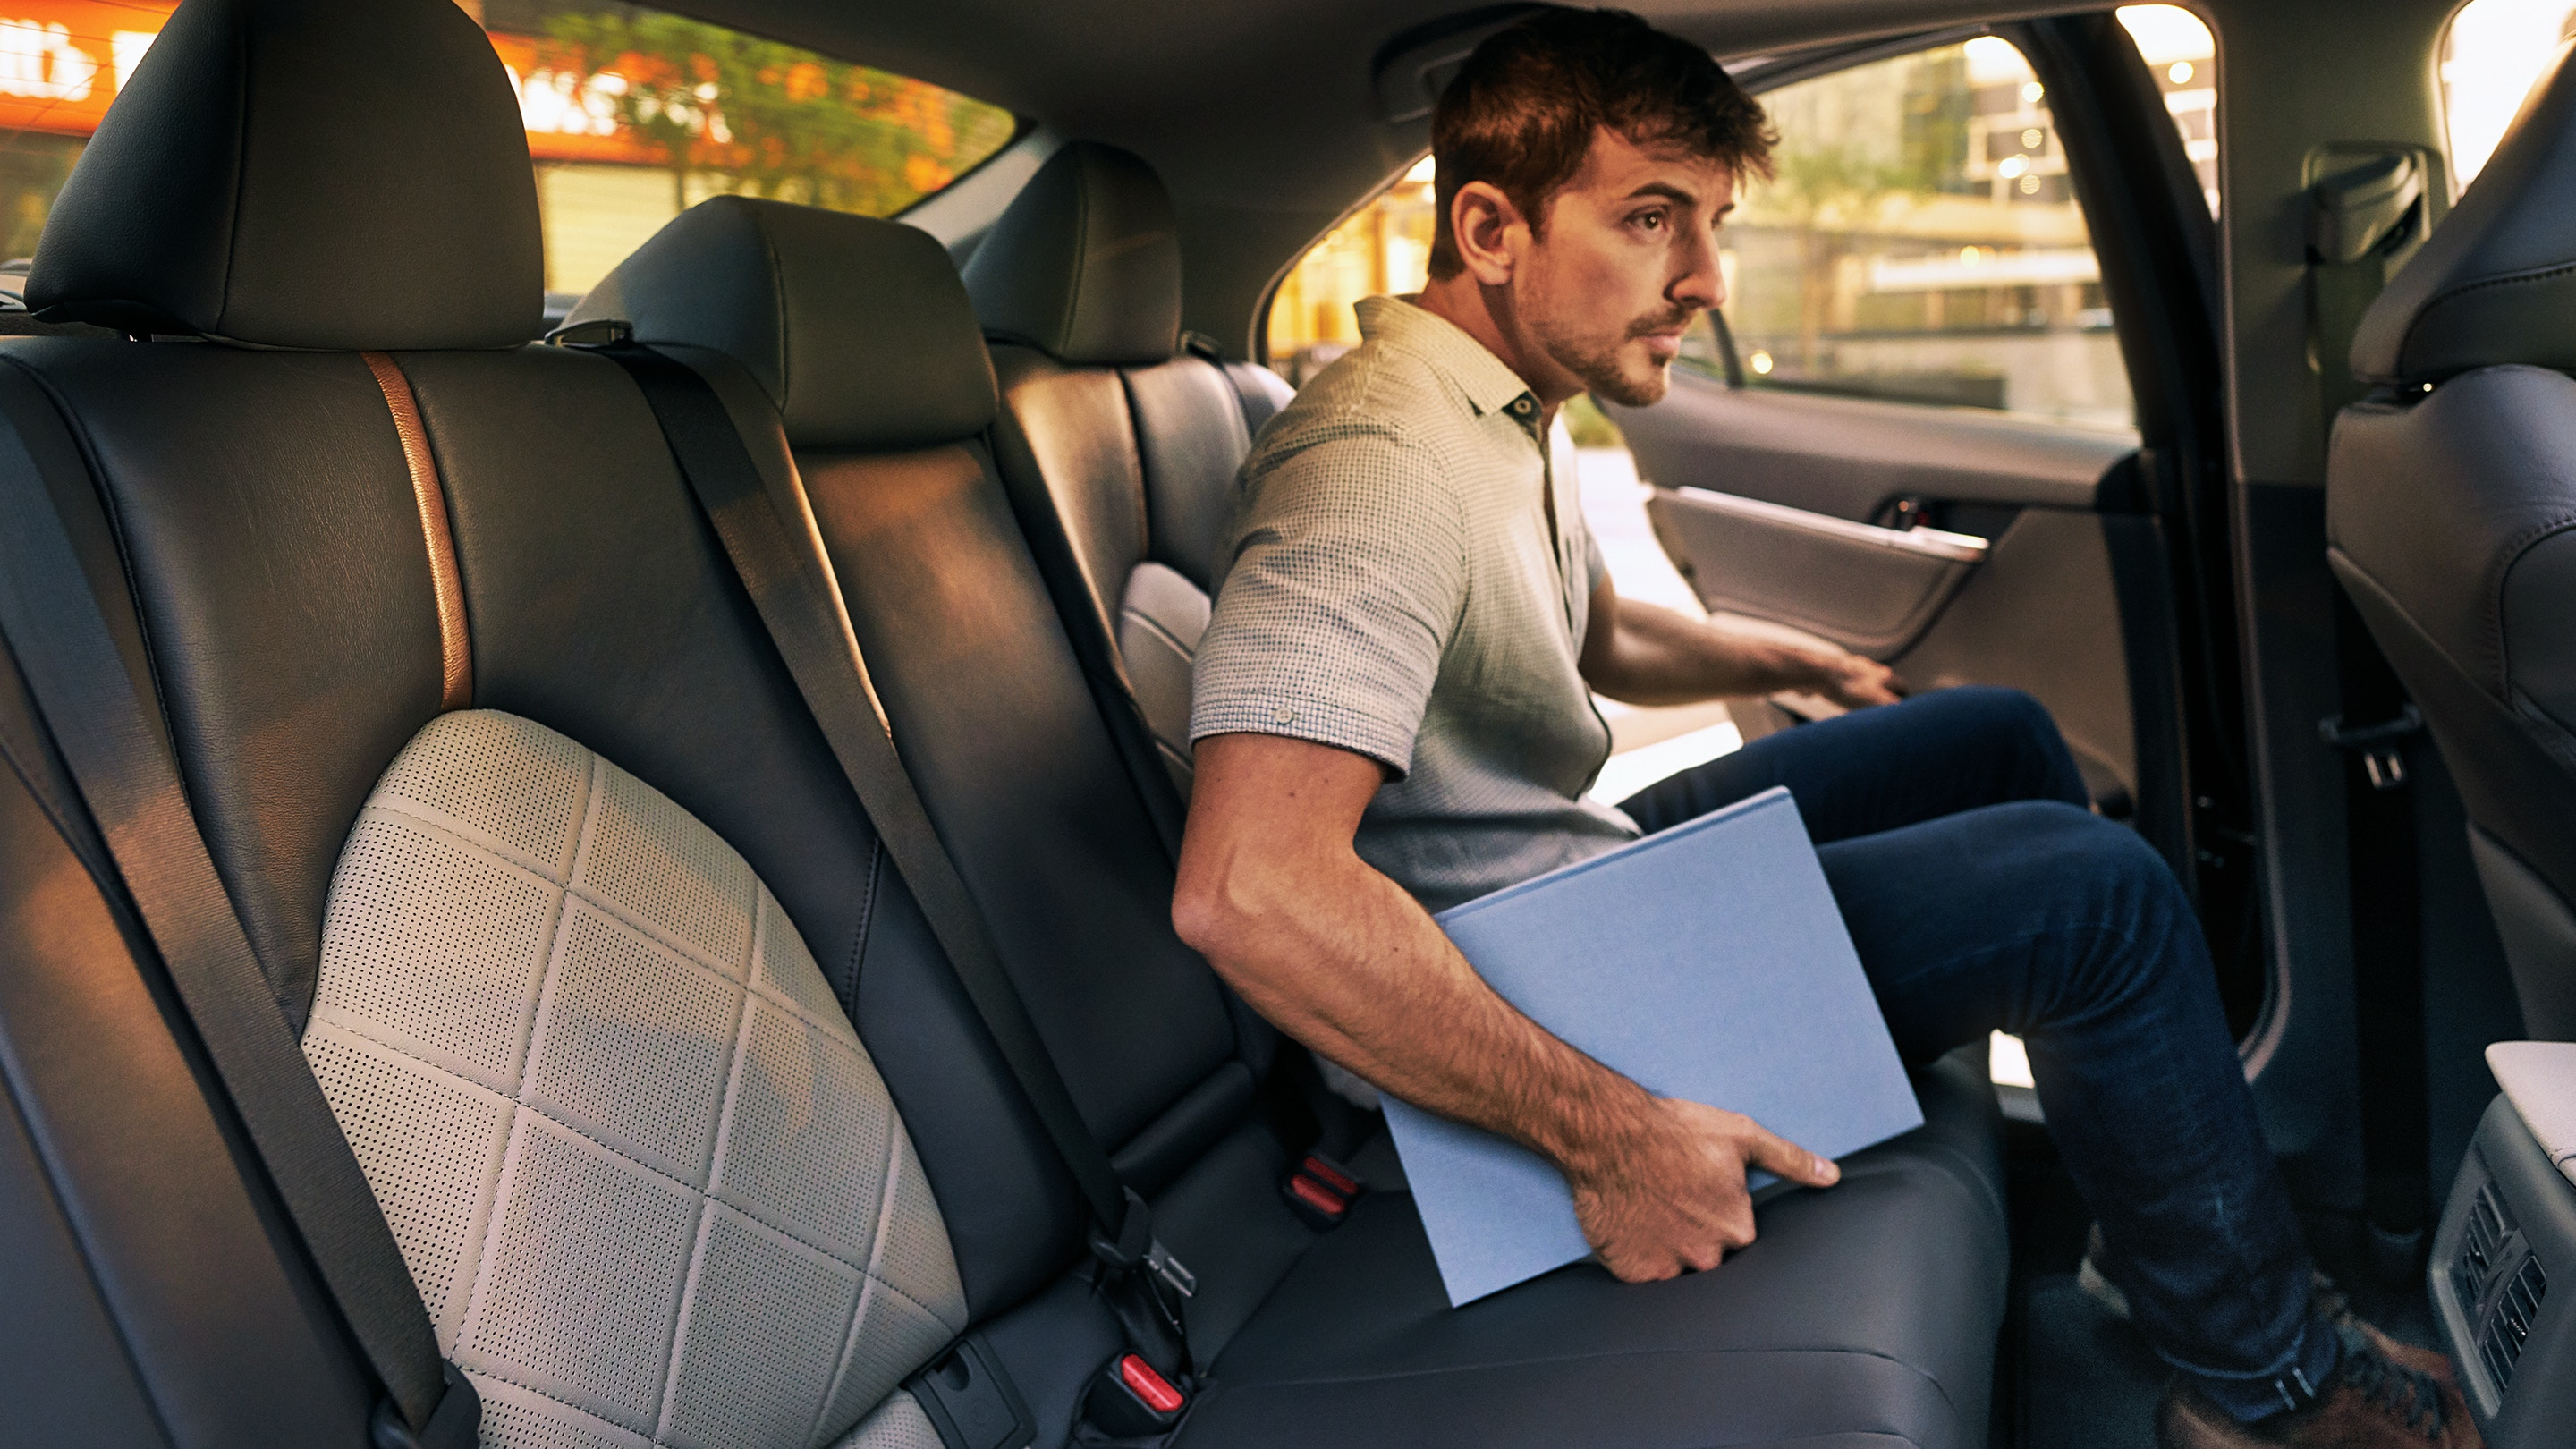 The Camry was Built with Comfort in Mind!